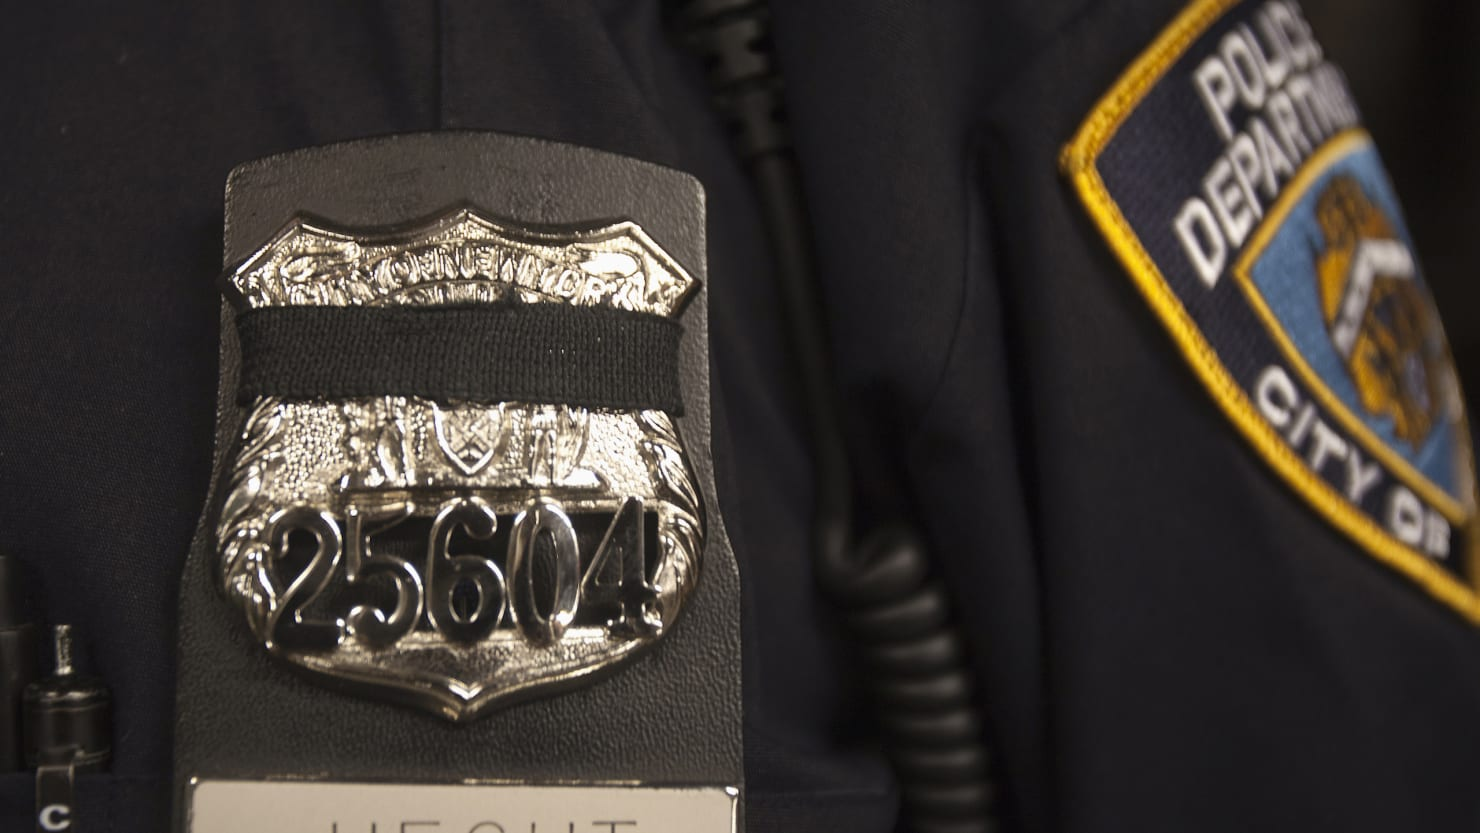 Former NYPD Sergeant Indicted for Allegedly Planting Knife in Cover-Up Attempt